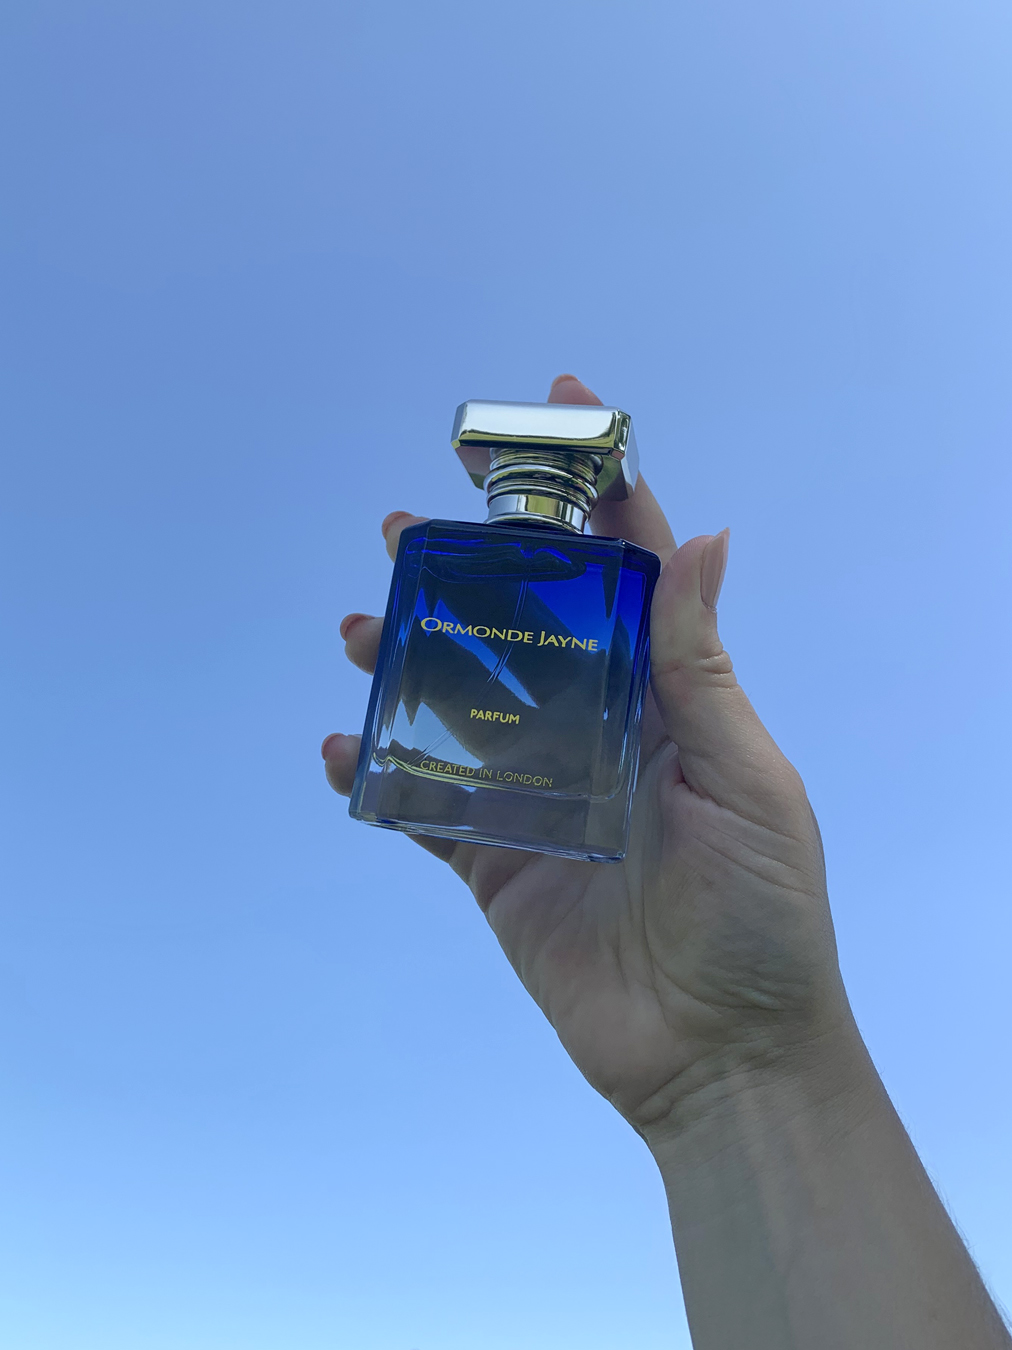 Ormonde Jayne London - Your Scent, Your Strength, Your Style bespoke fragrances - luxury beauty & style blog